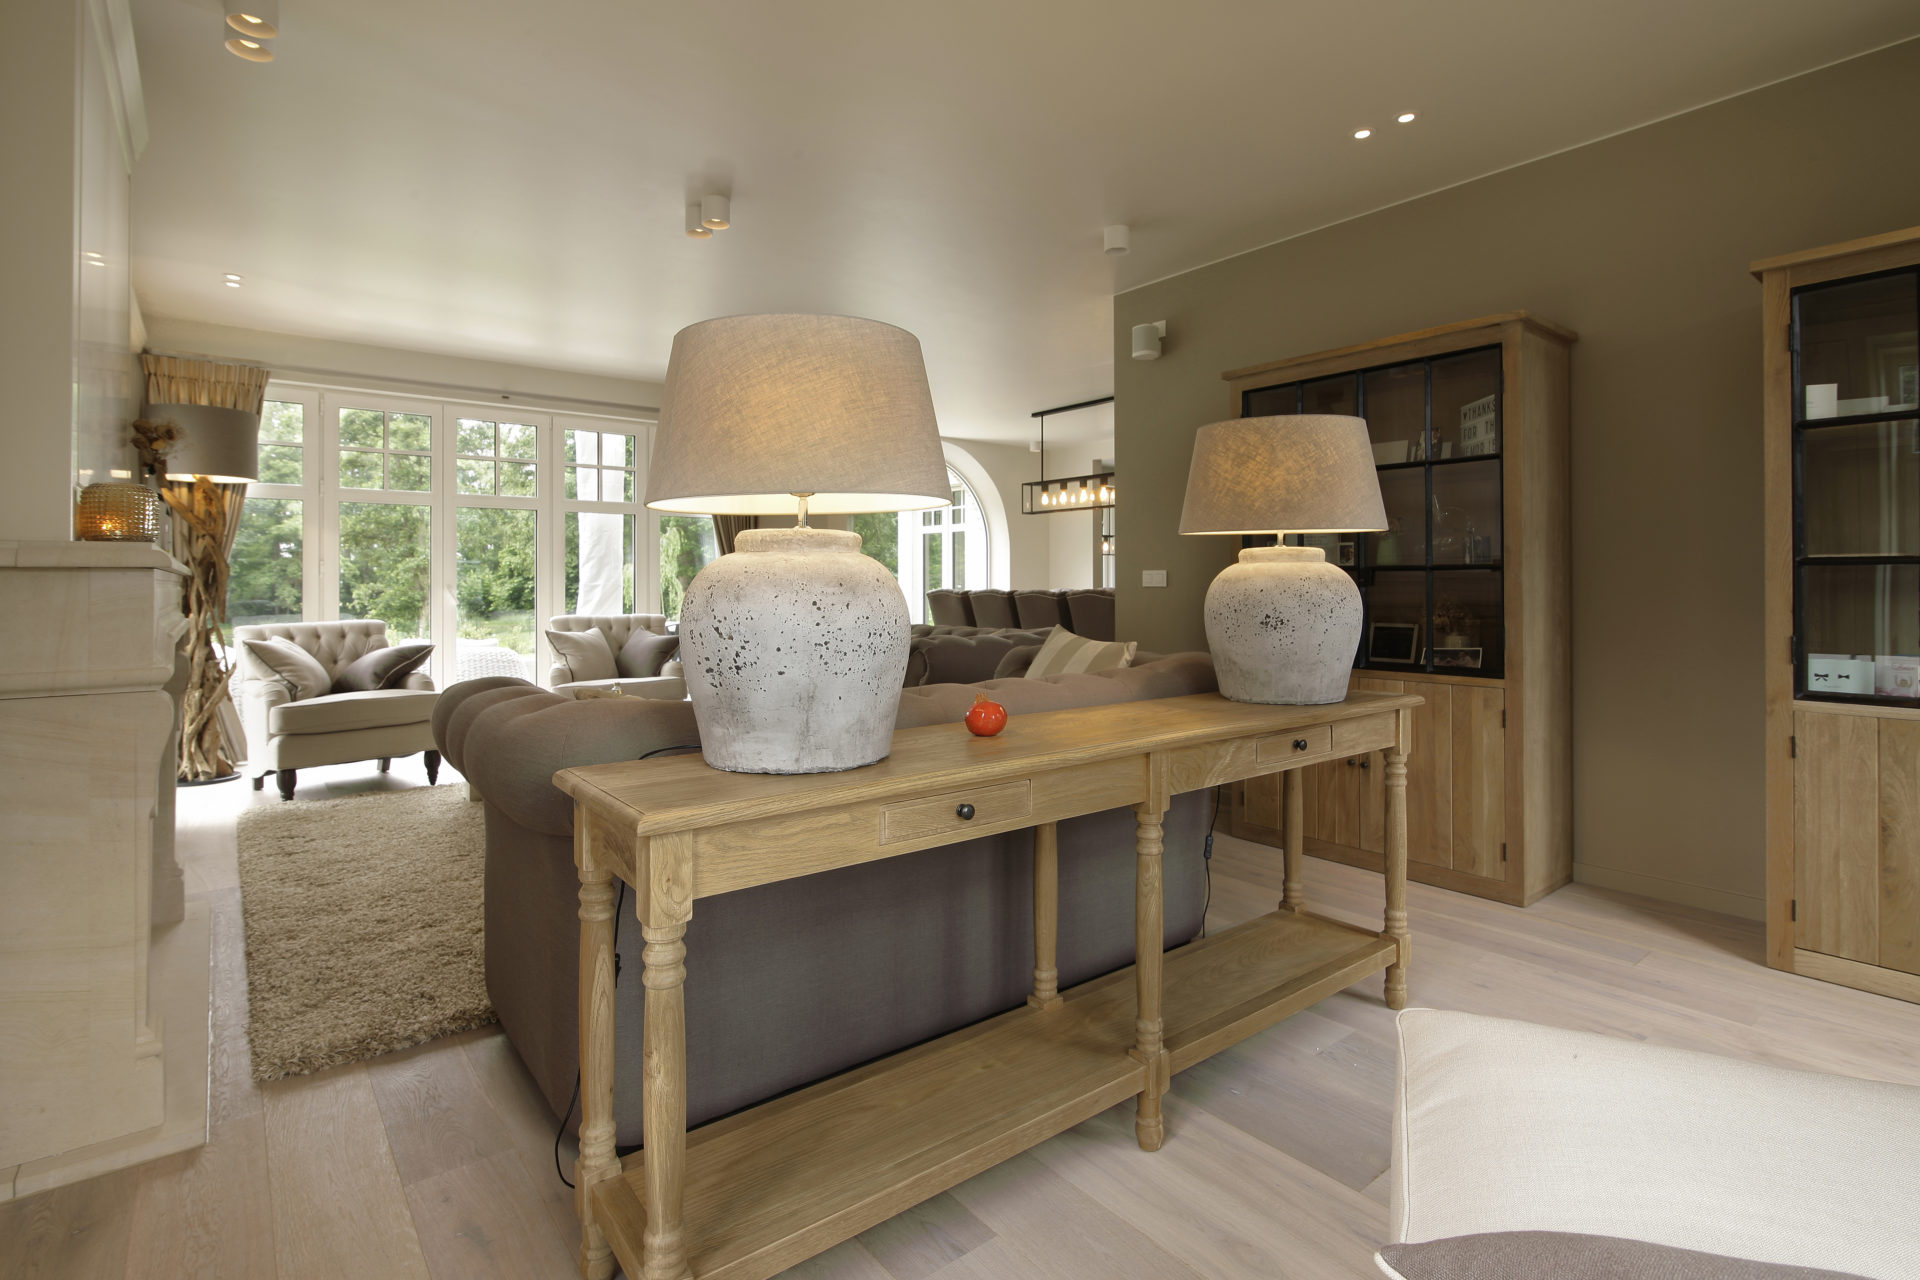 Contemporary Country Interior - Marcotte Style